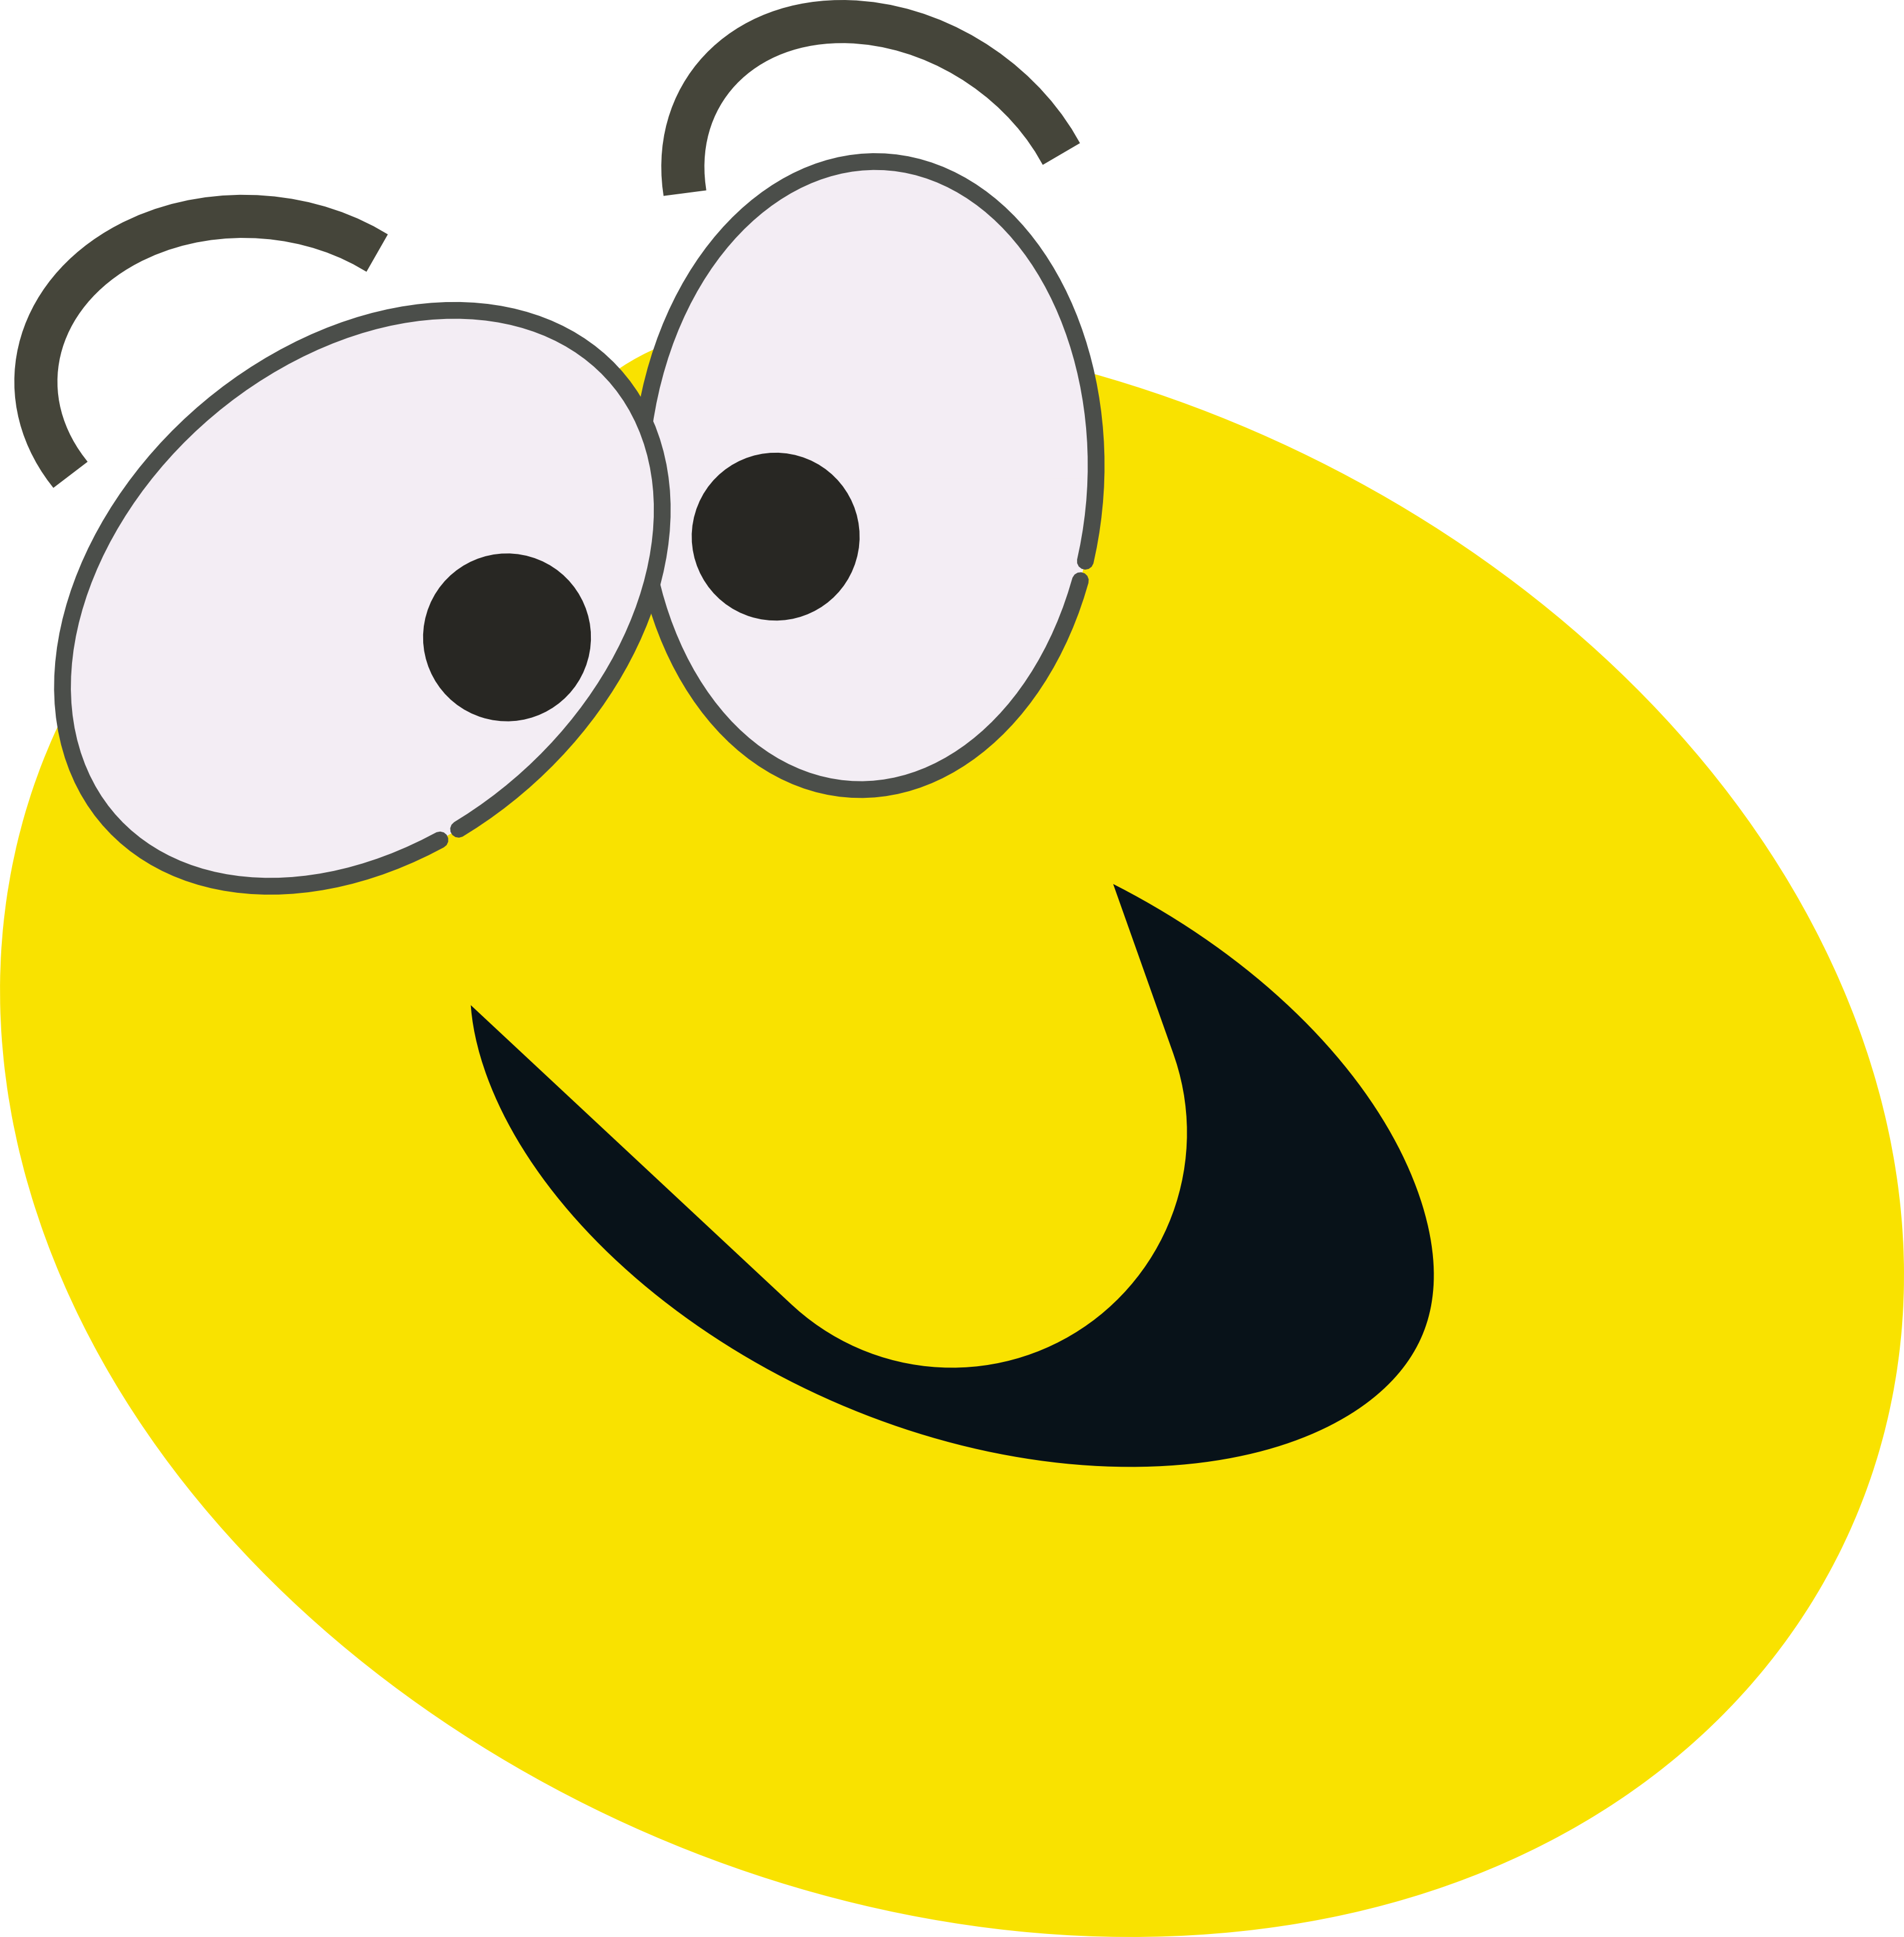 Cartoon smiling faces clipart picture transparent Images Of Smiling Faces Clipart | Free download best Images Of ... picture transparent